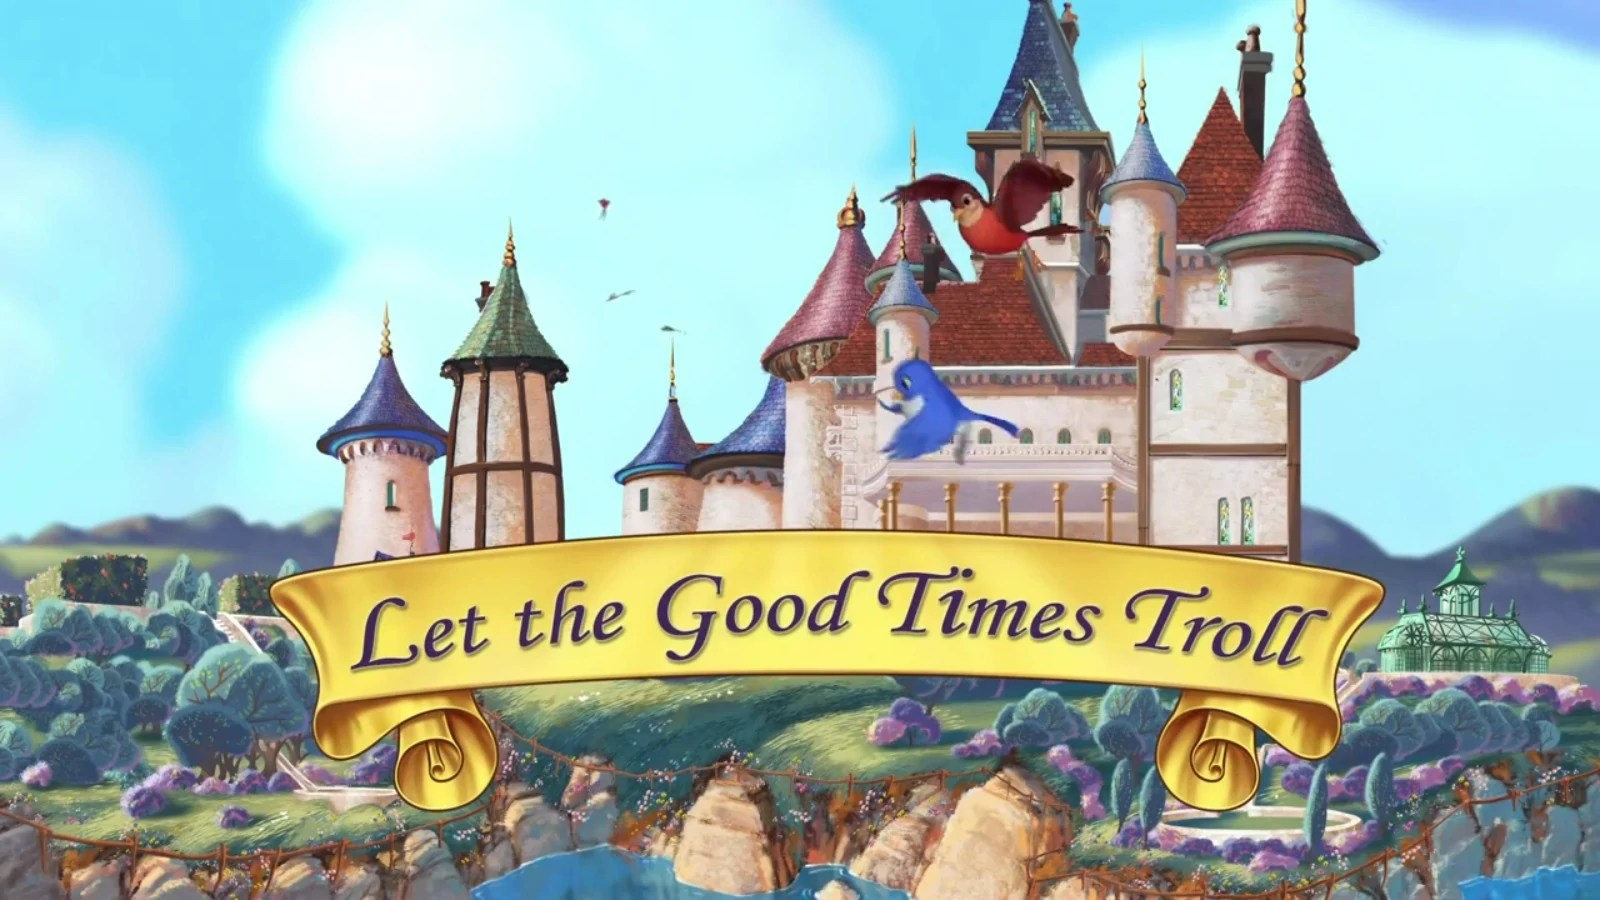 Let The Good Times Troll Disney Wiki FANDOM Powered By Wikia